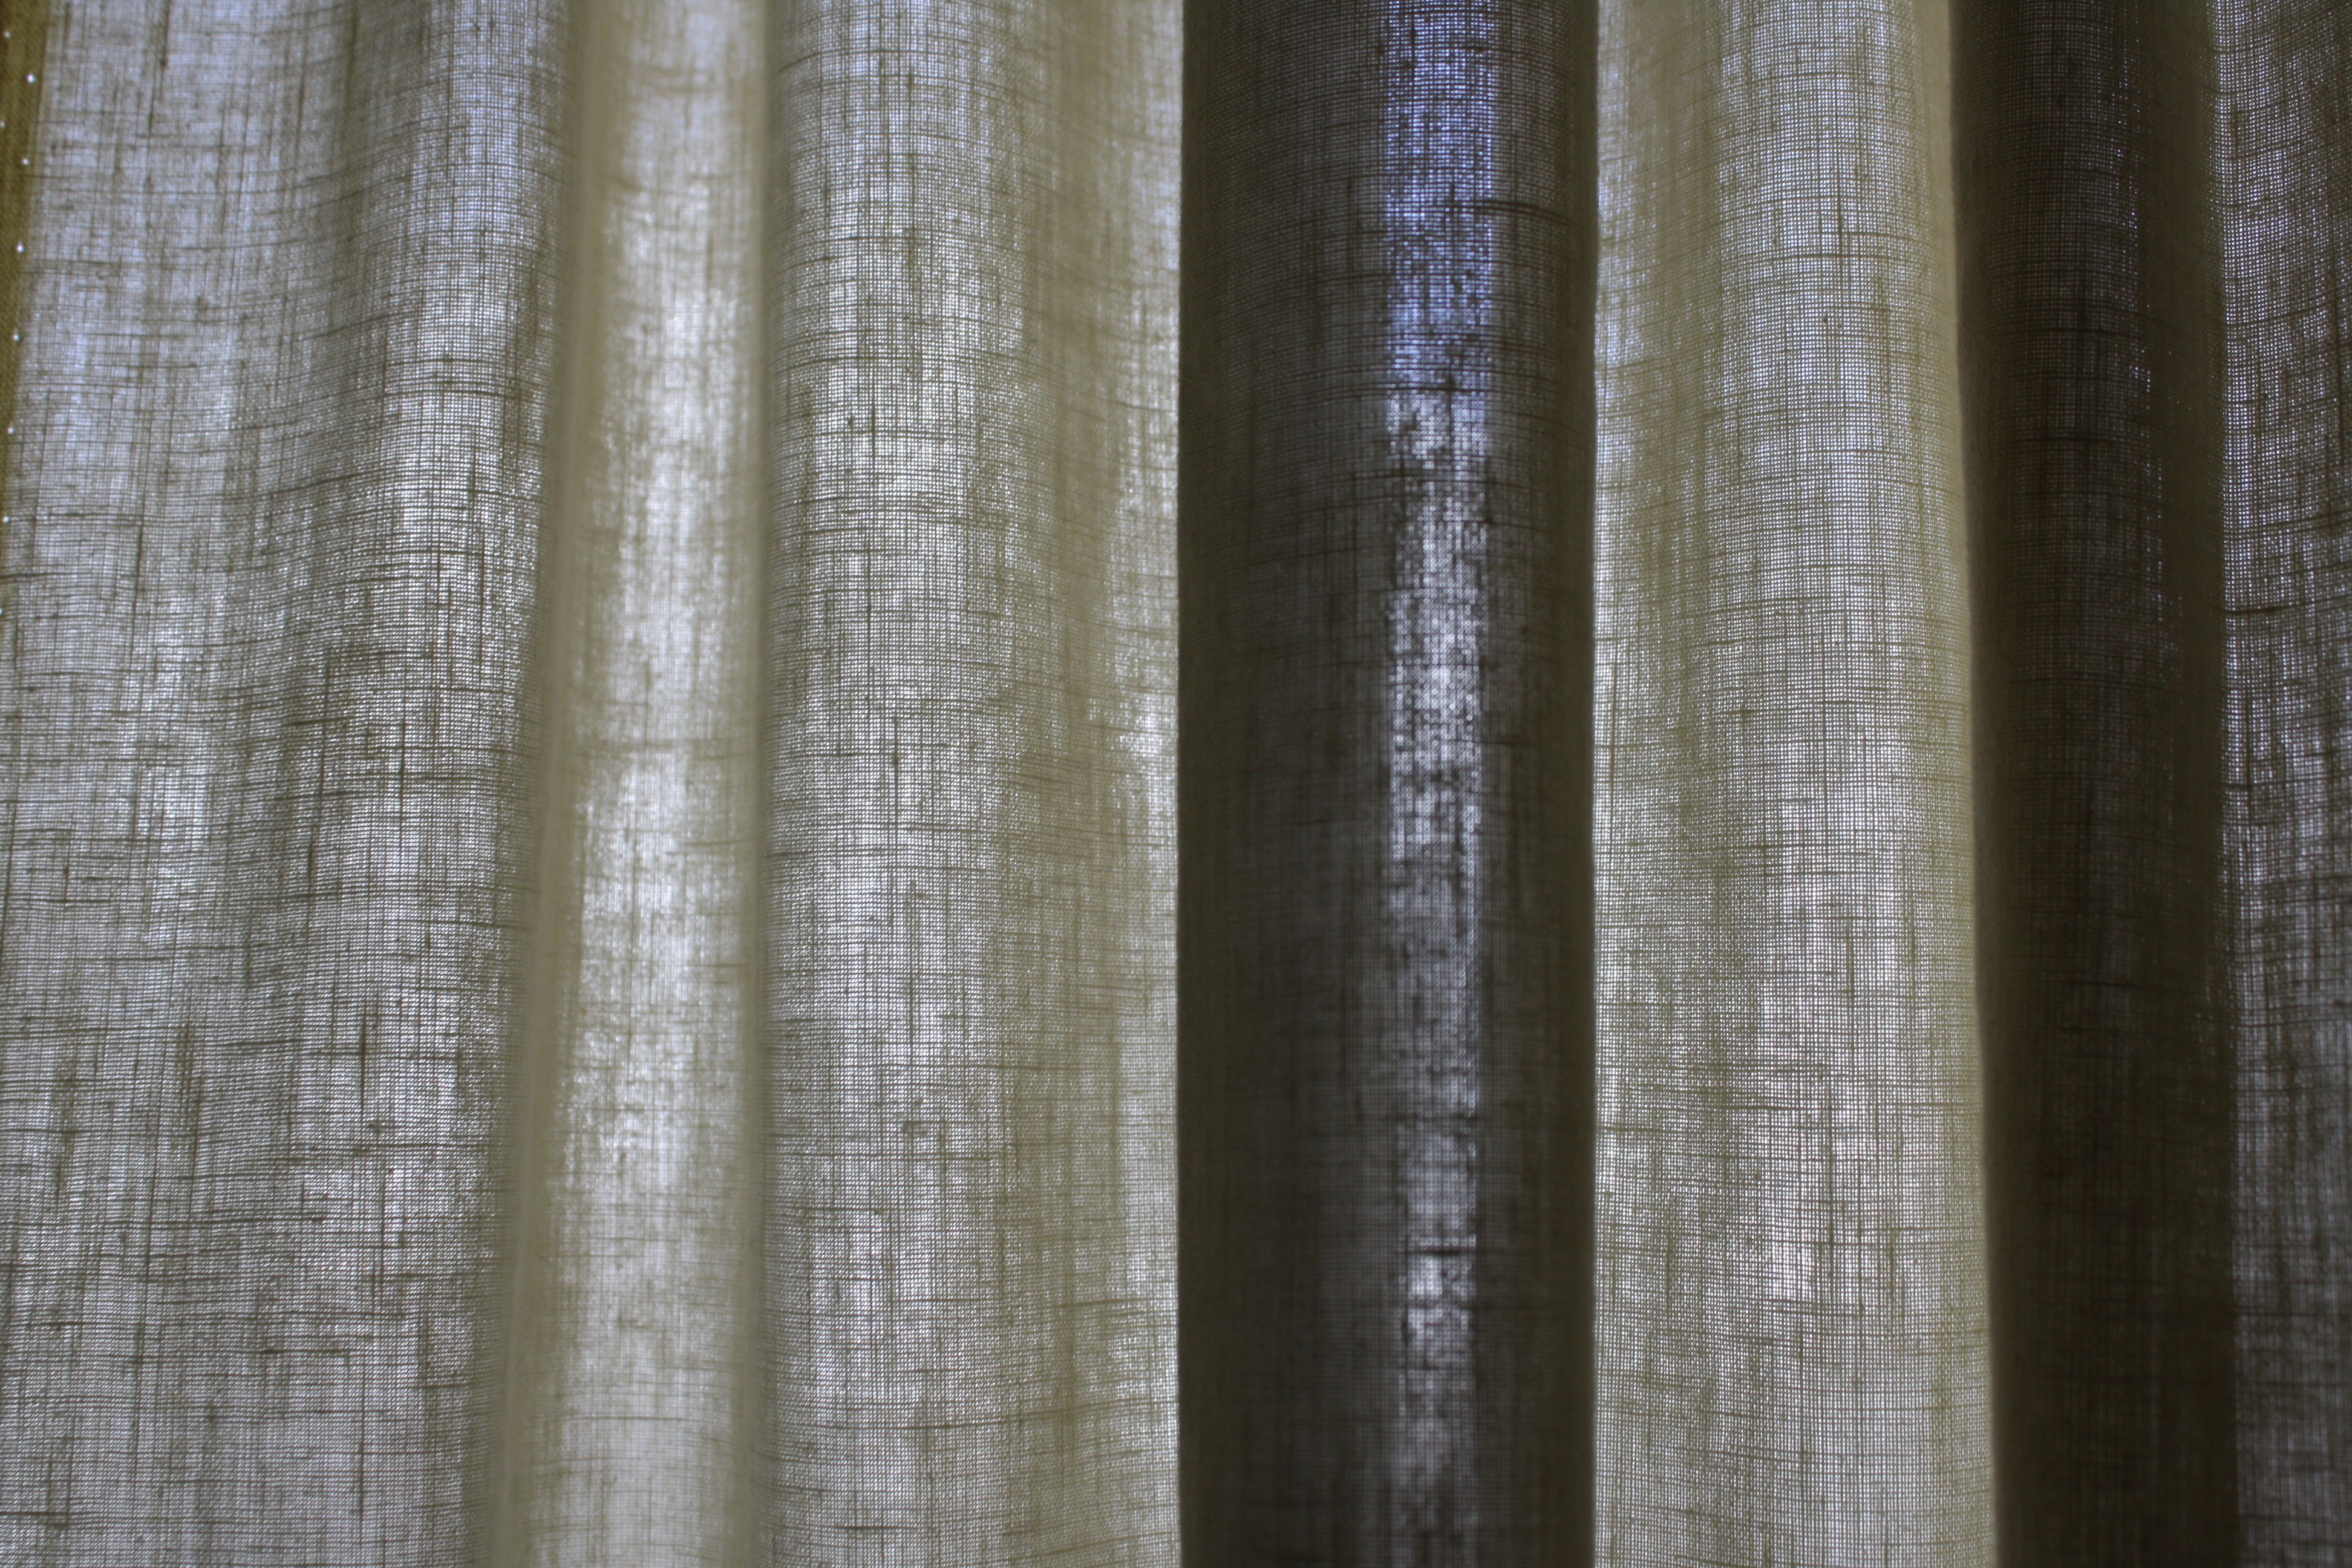 Light Through Curtains Texture Picture Free Photograph